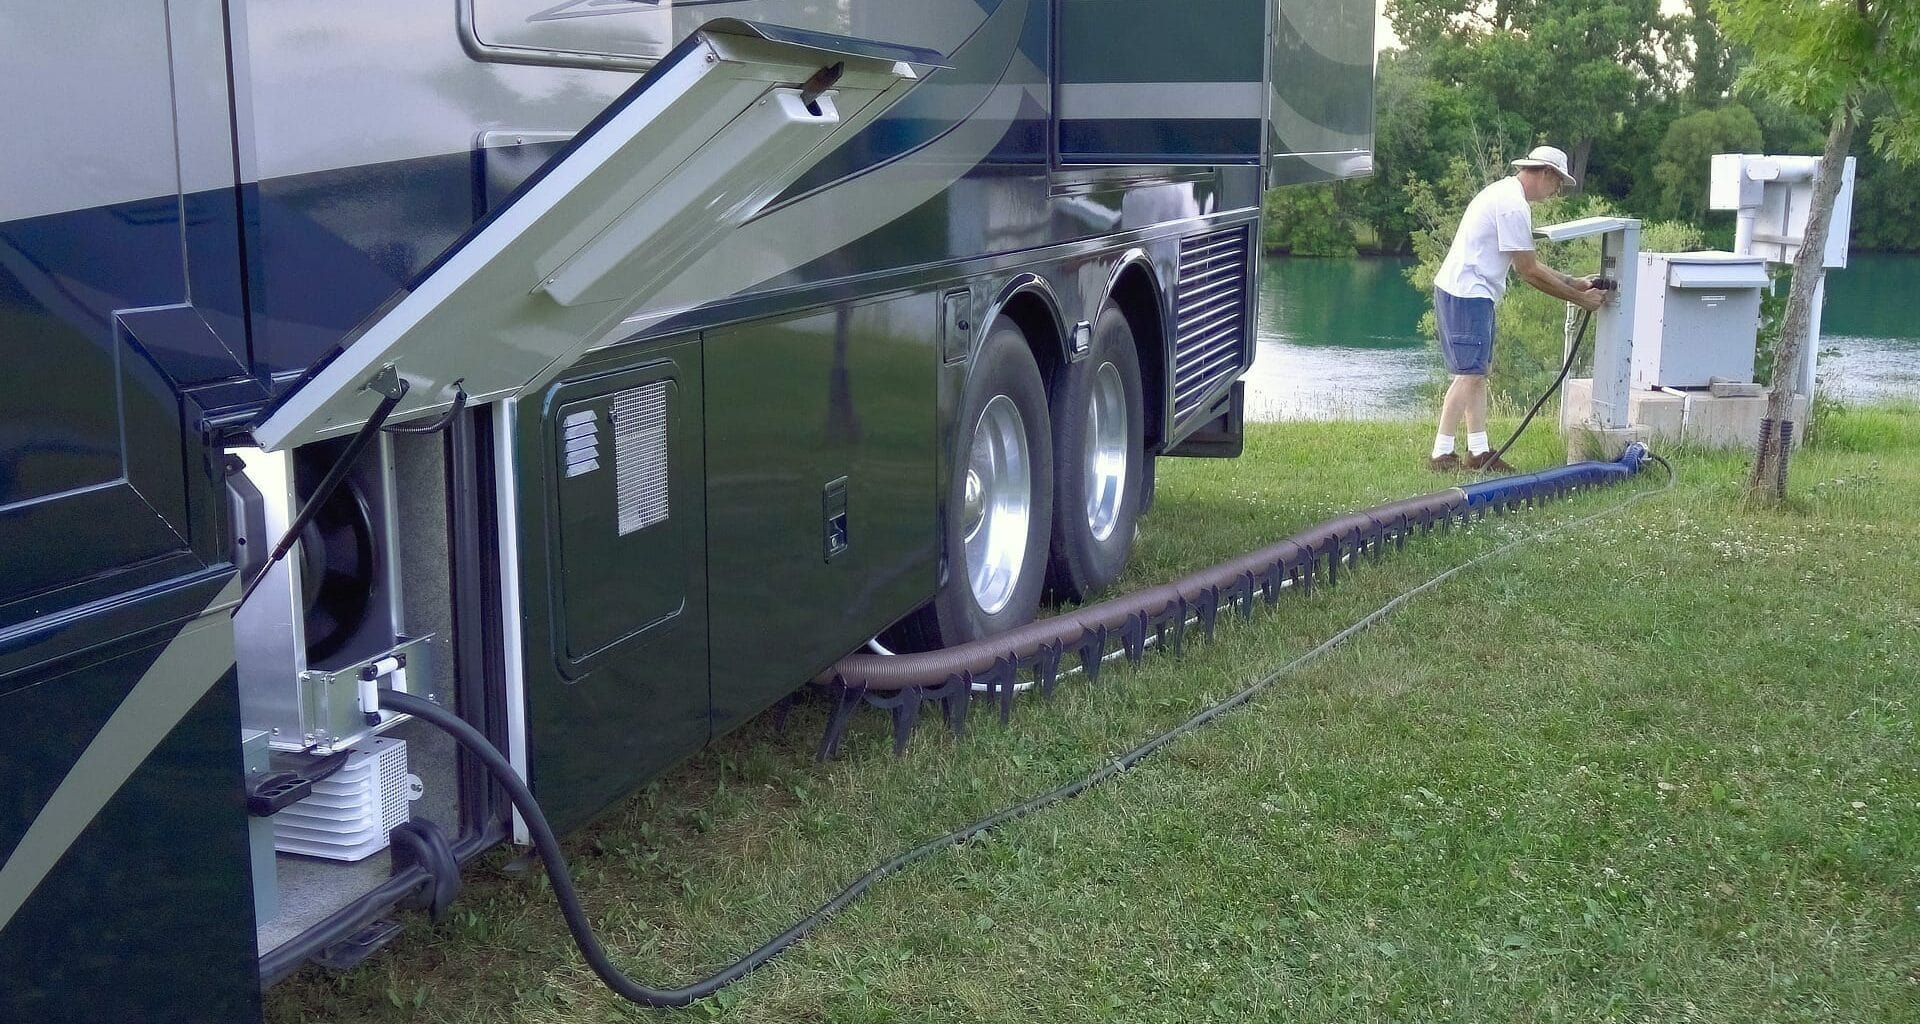 Hooking up an RV at a full hook-up campsite